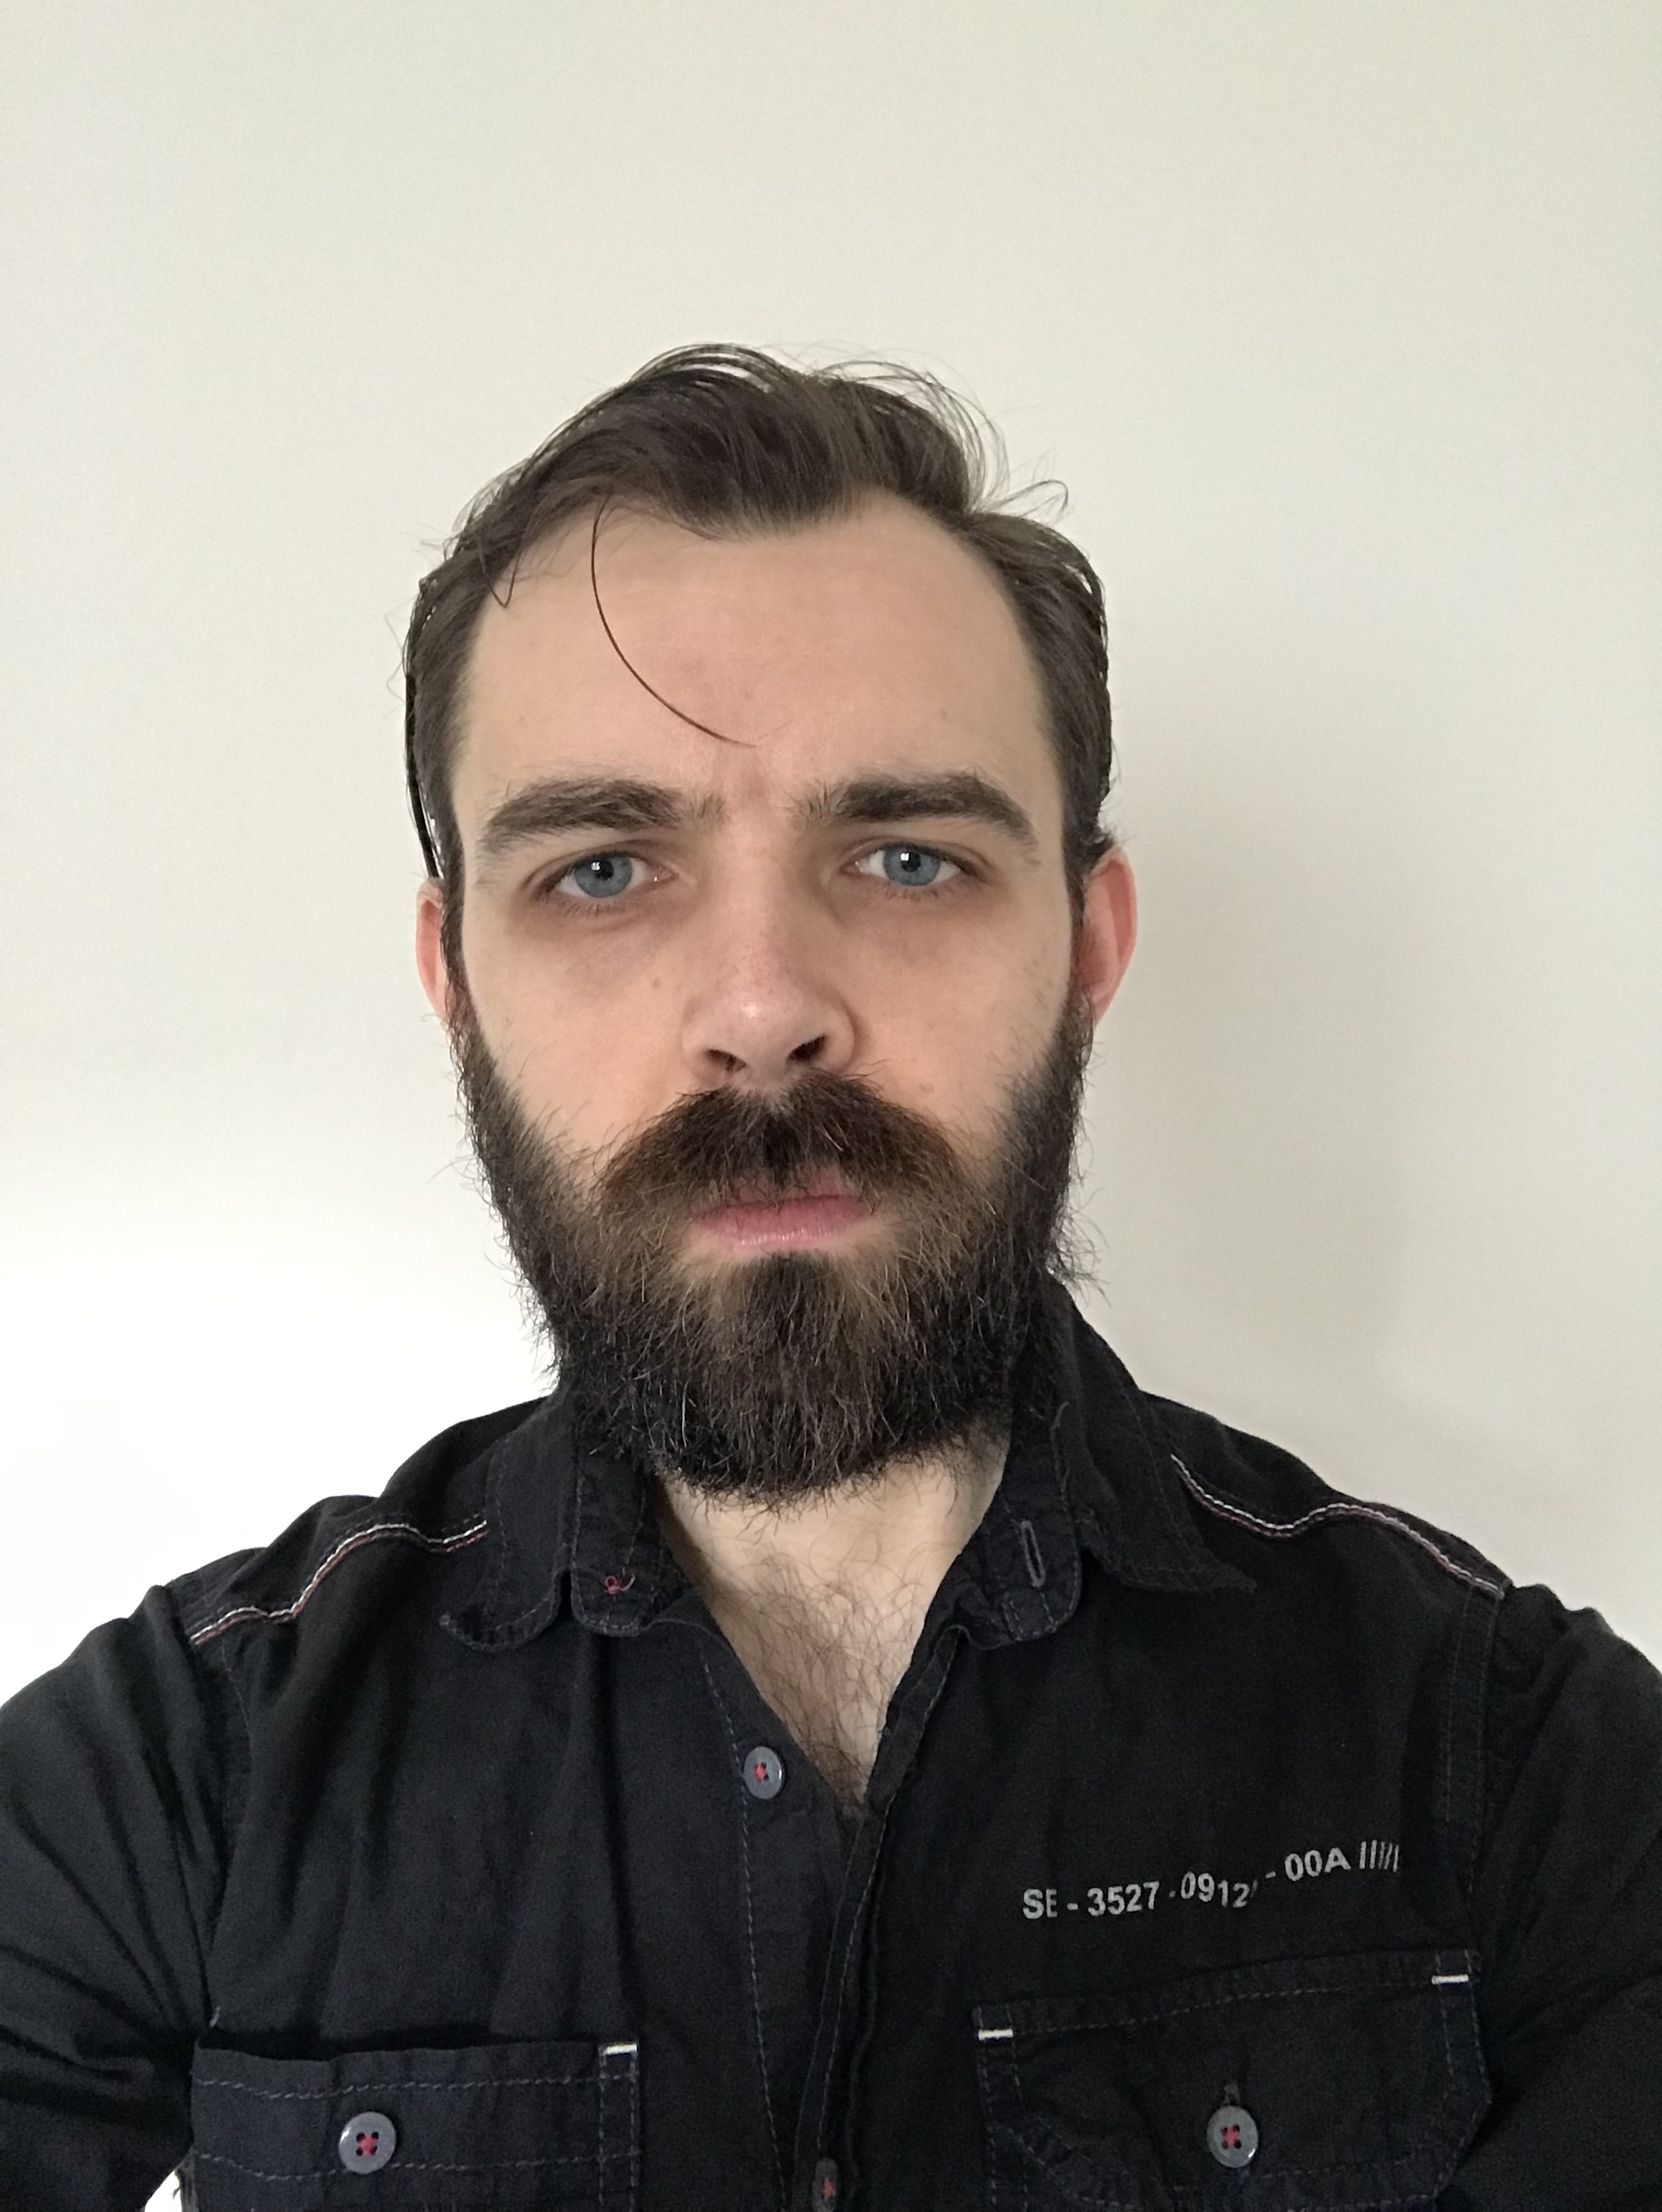 Image of a man with a dark beard and black shirt